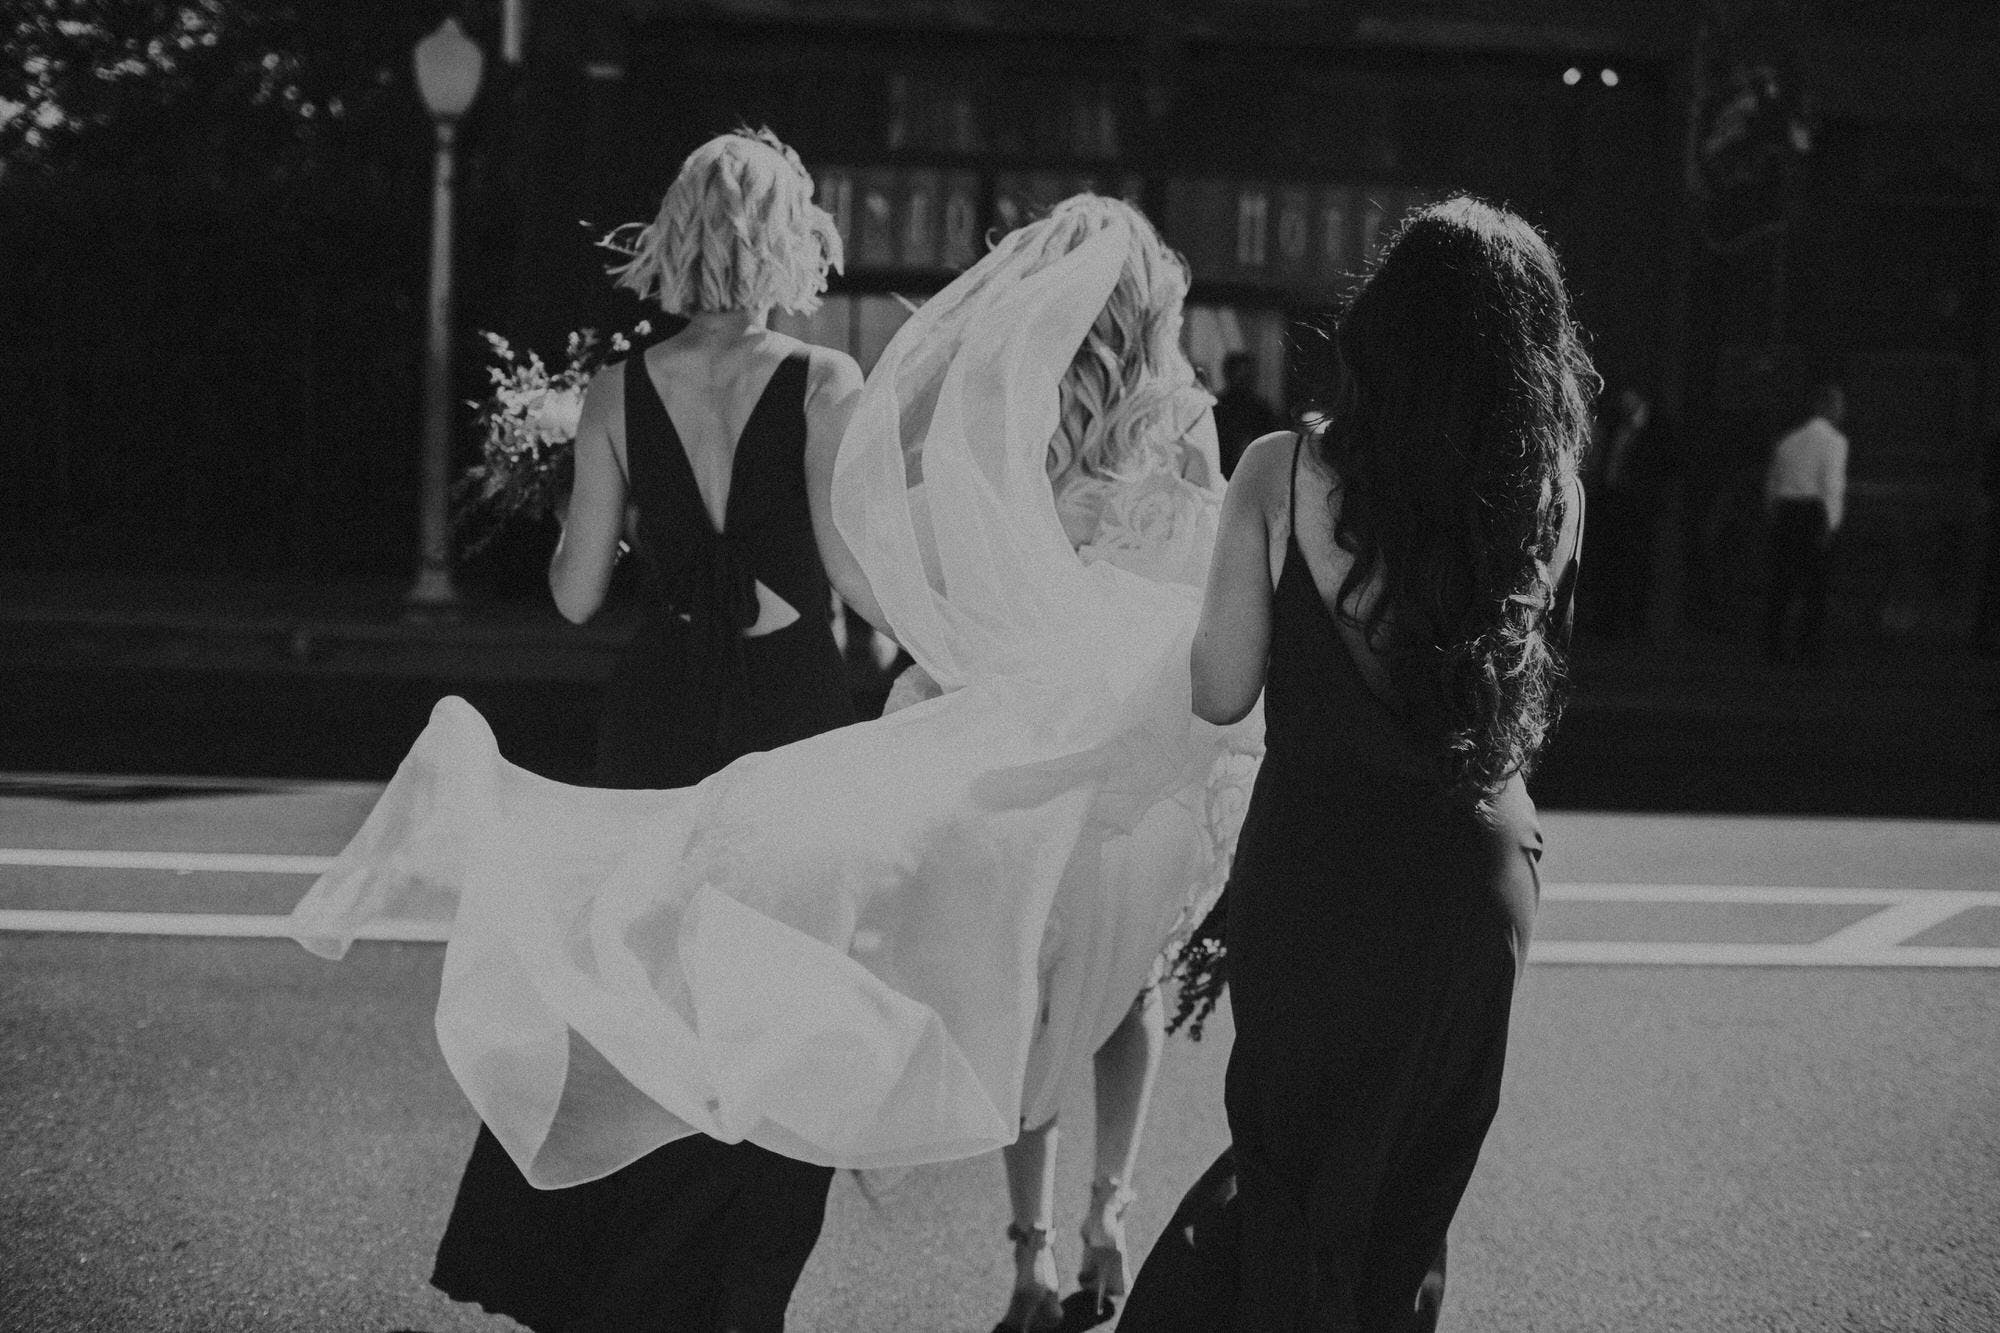 photojournalistic focused wedding photographer based in LA